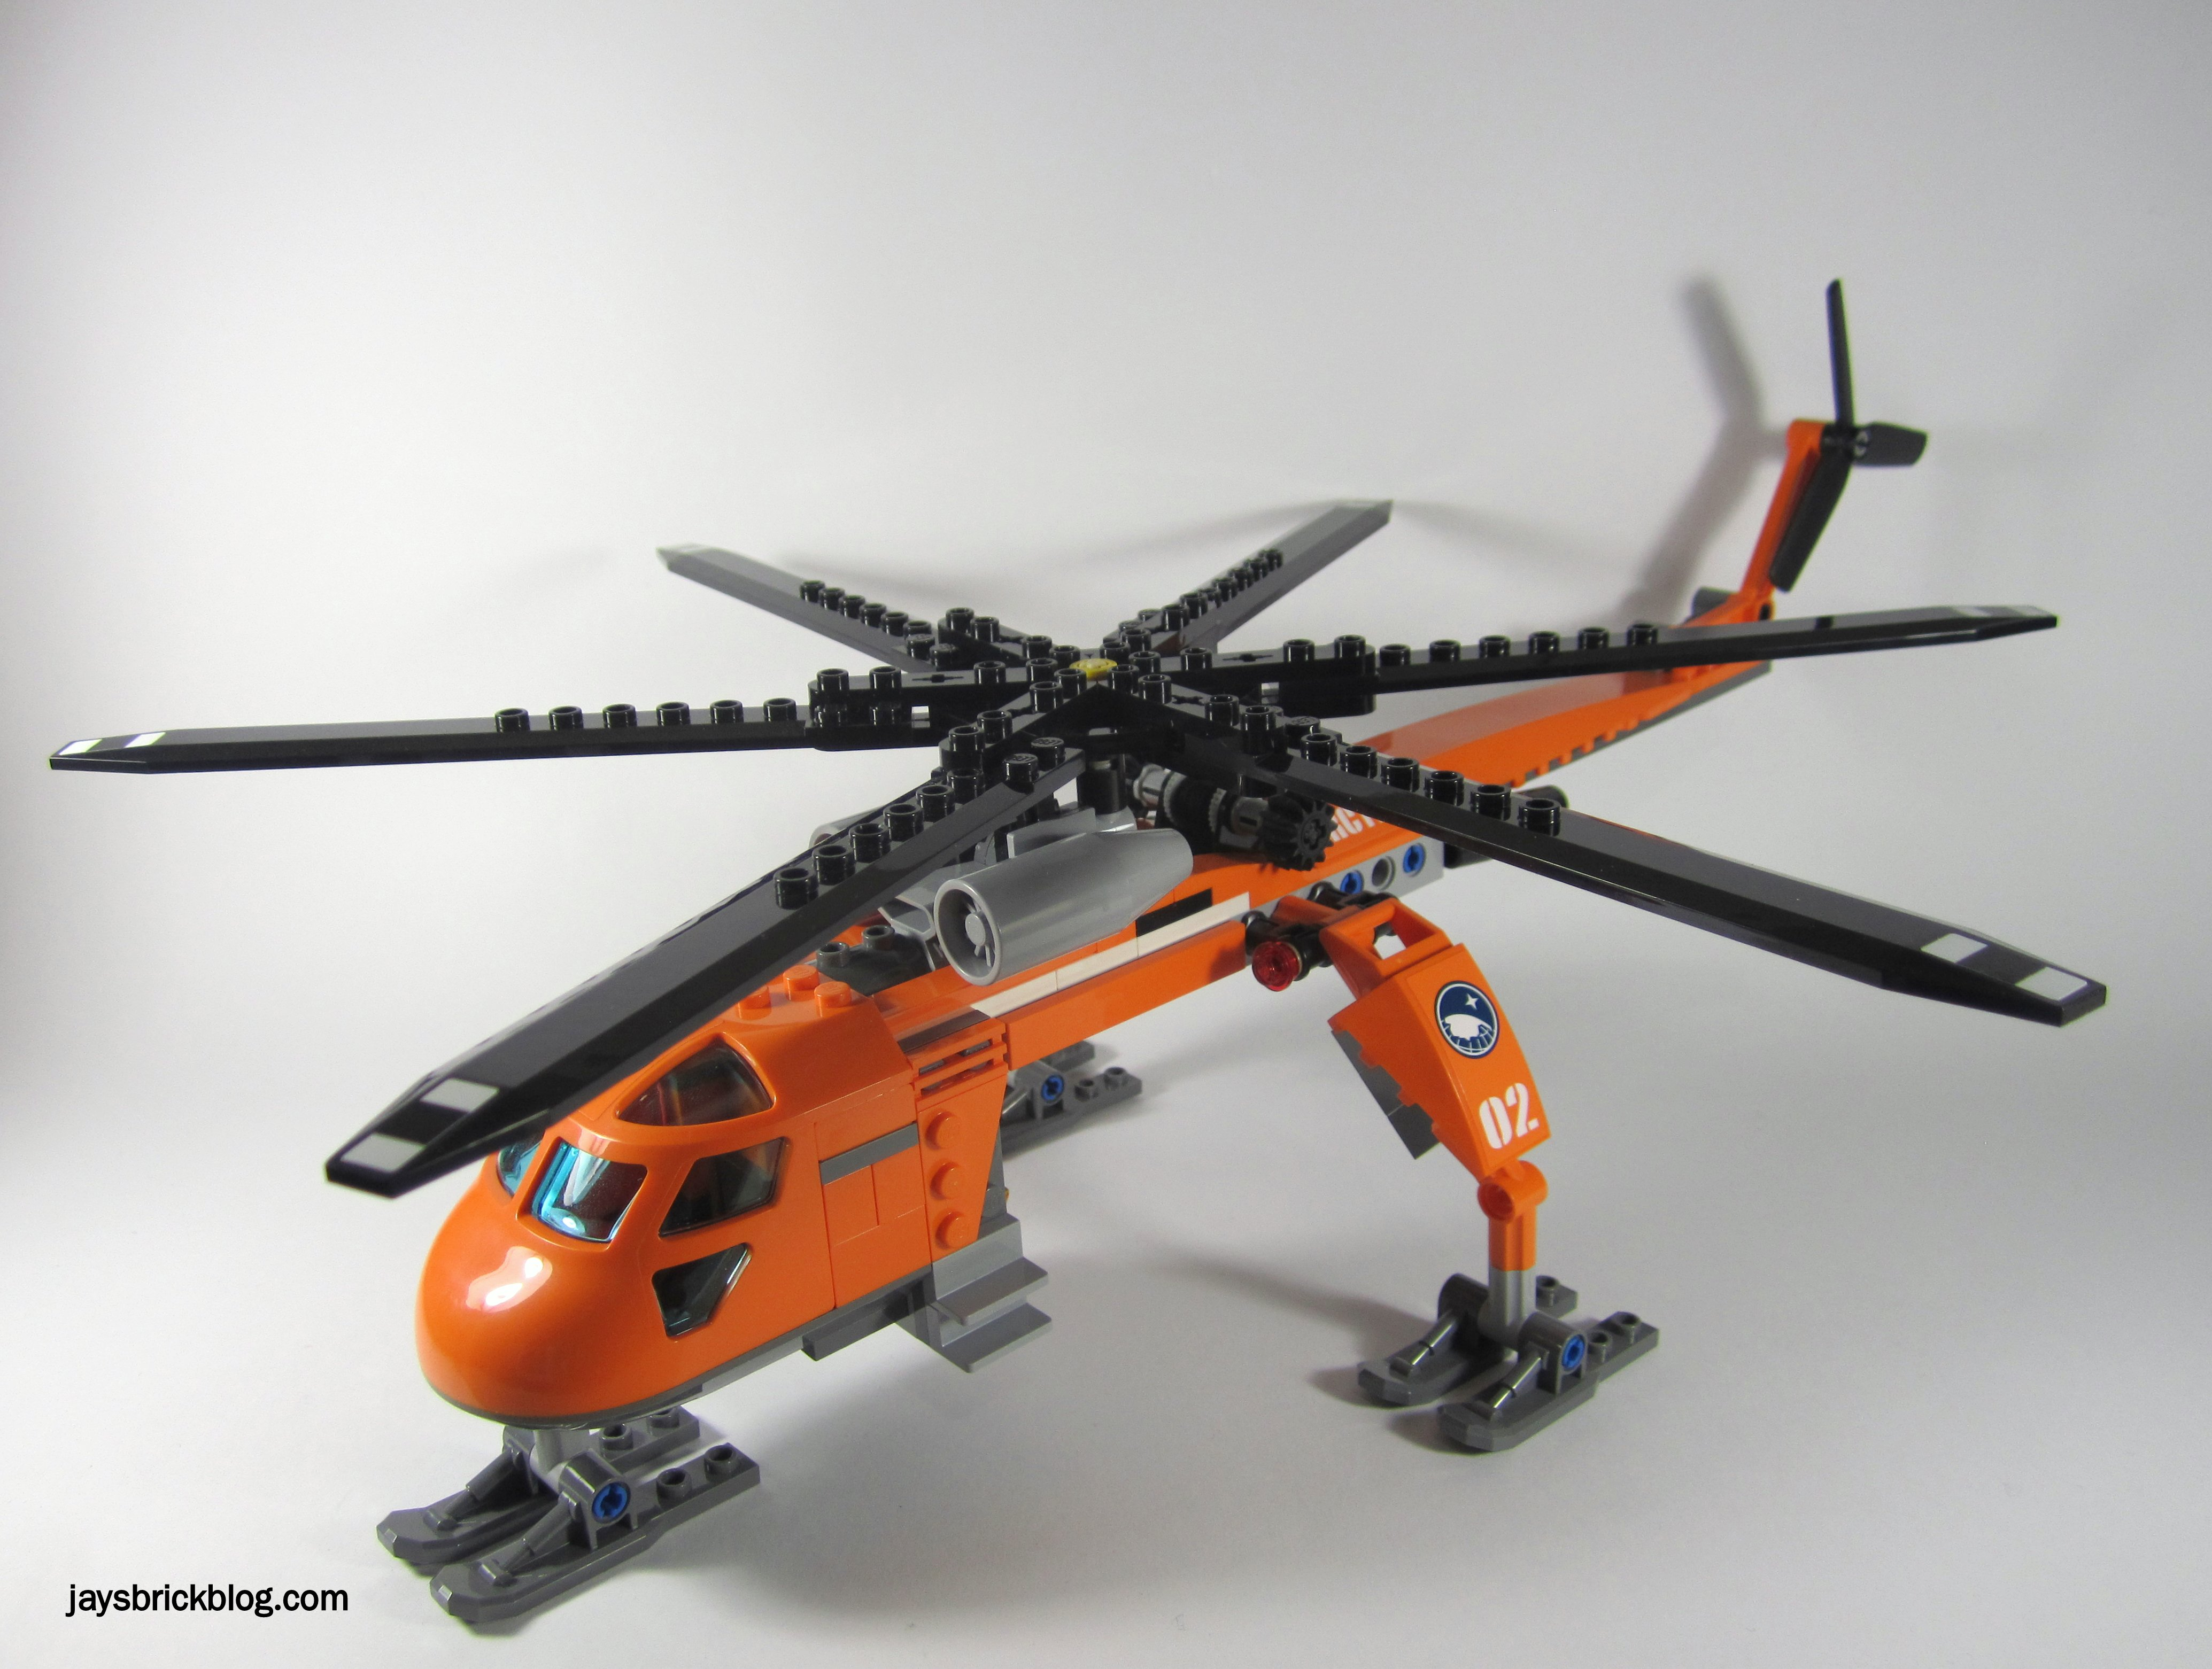 Amazon.com: LEGO City Police Helicopter 7741: Toys & Games